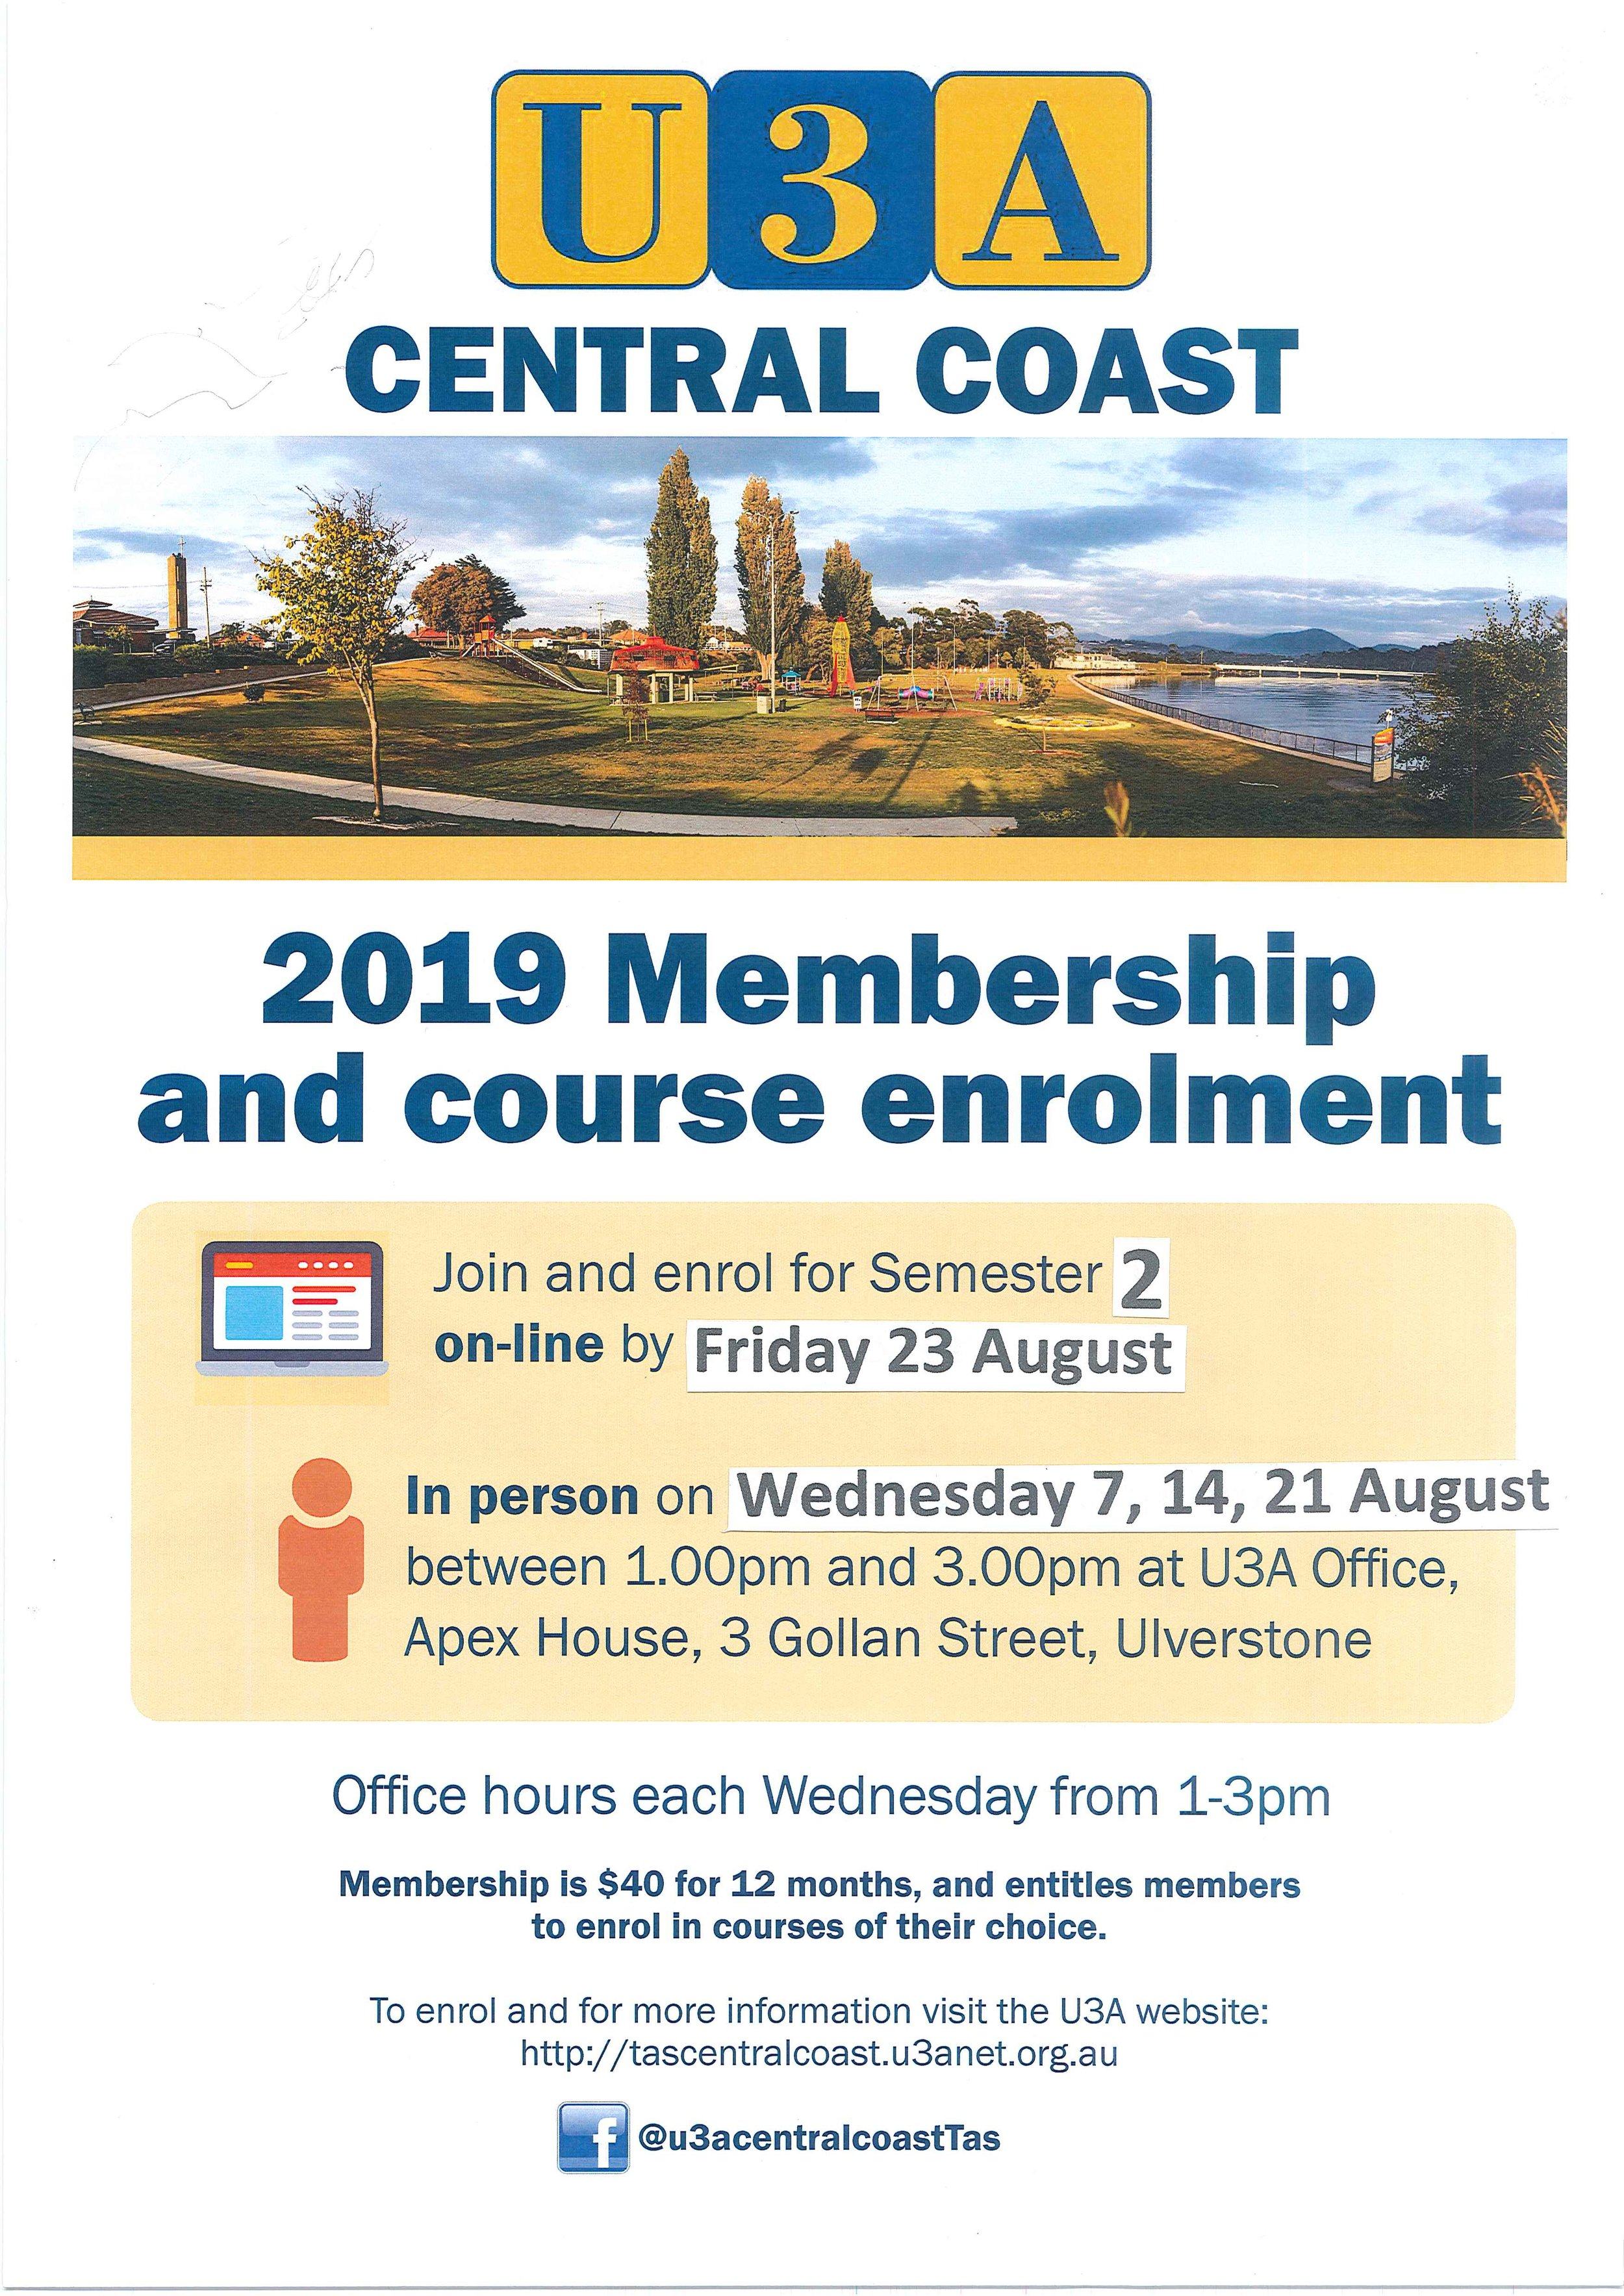 20190823 U3A Central Coast Membership and Course Enrolment.jpg